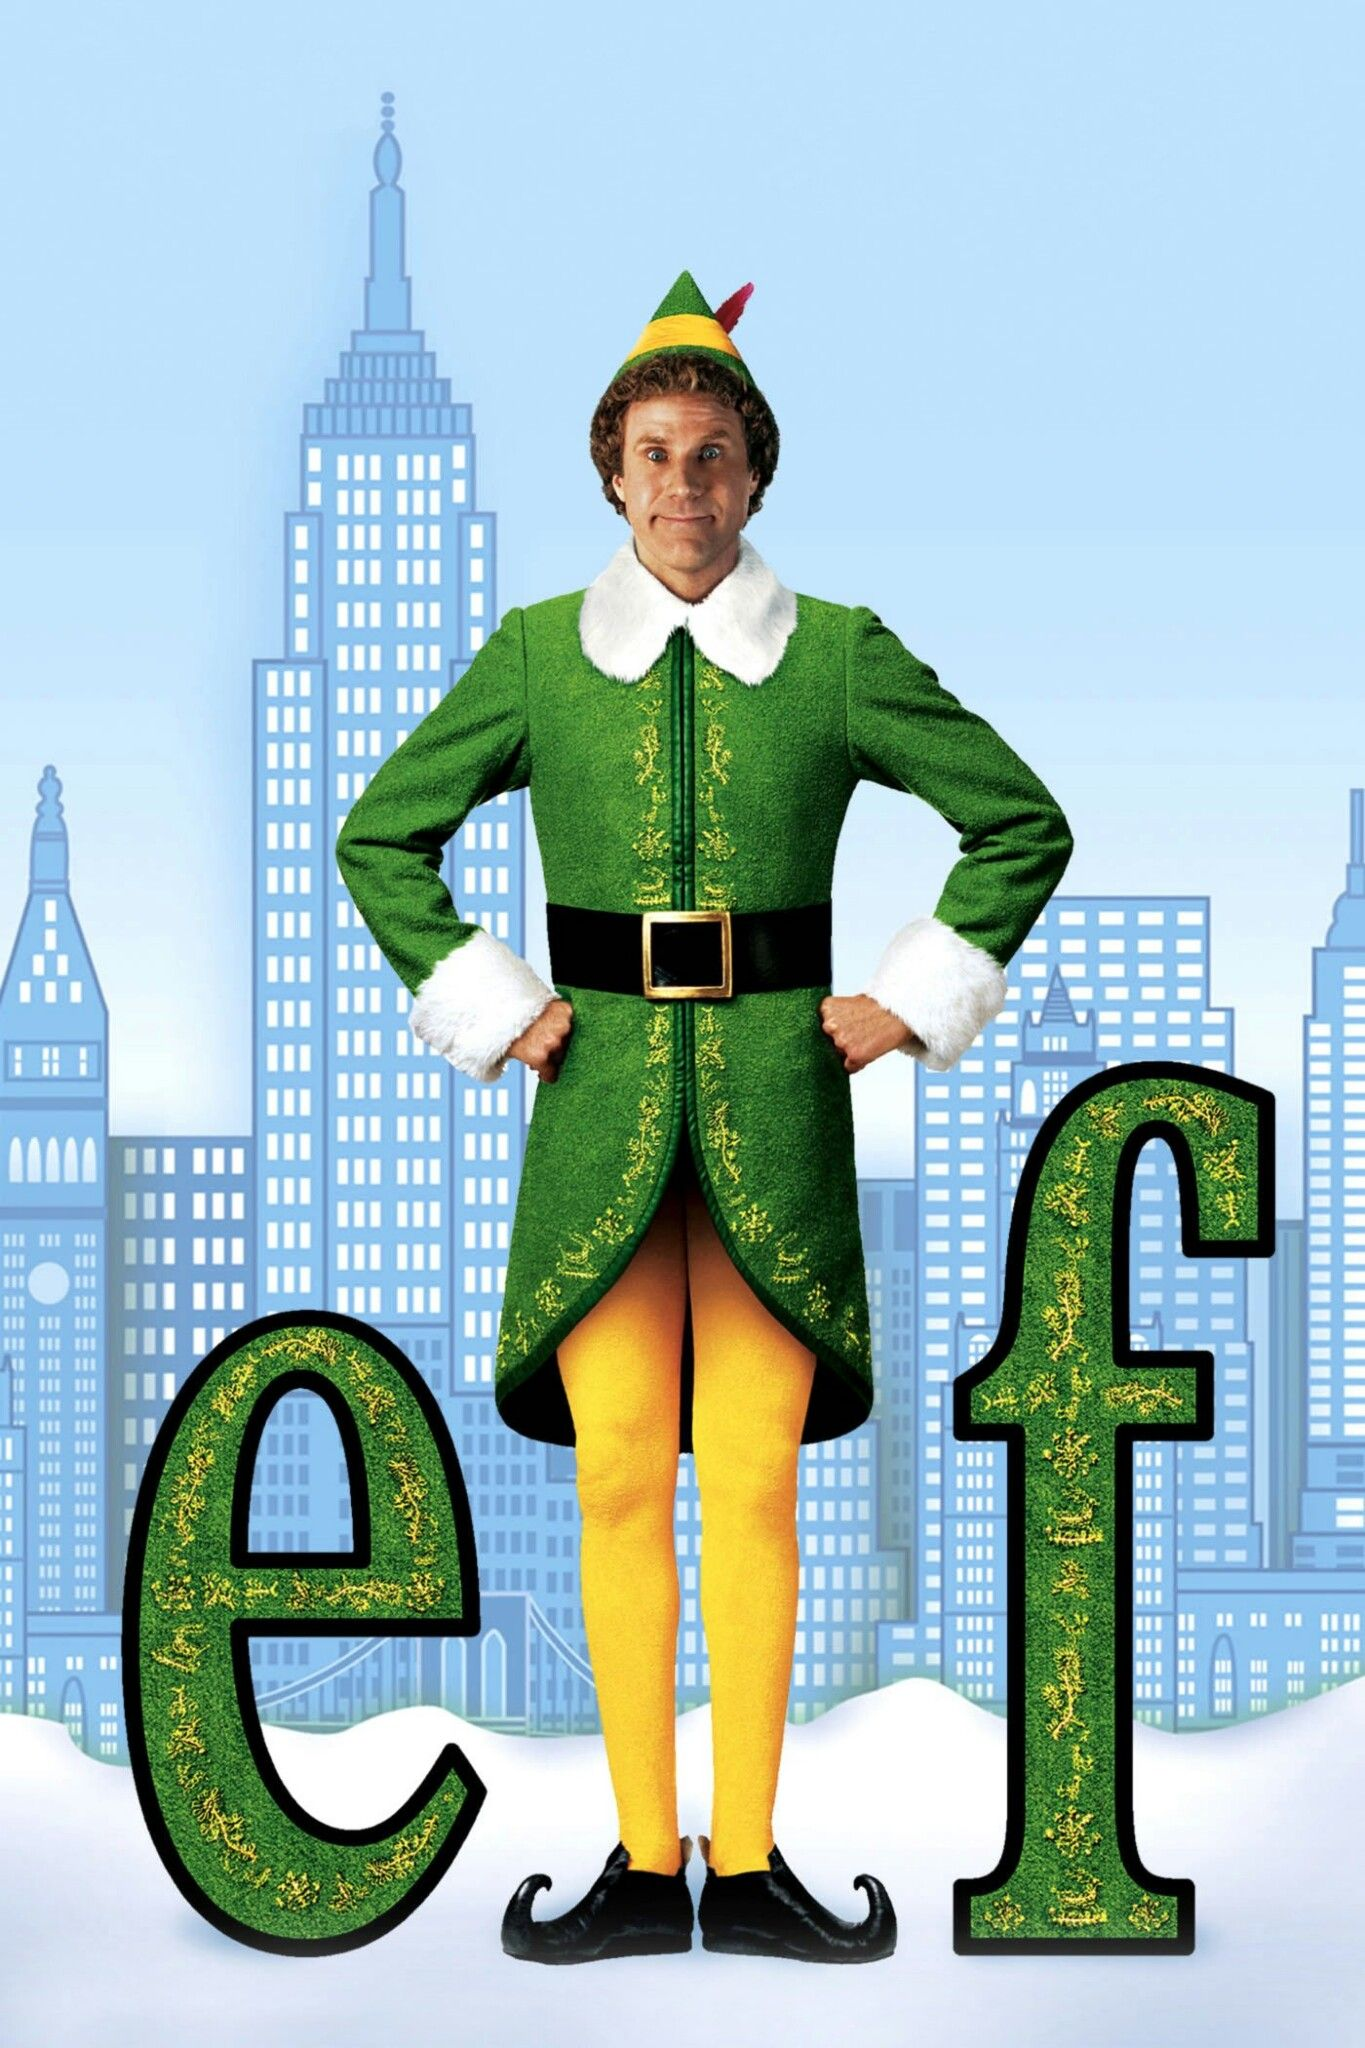 Image result for elf official movie poster